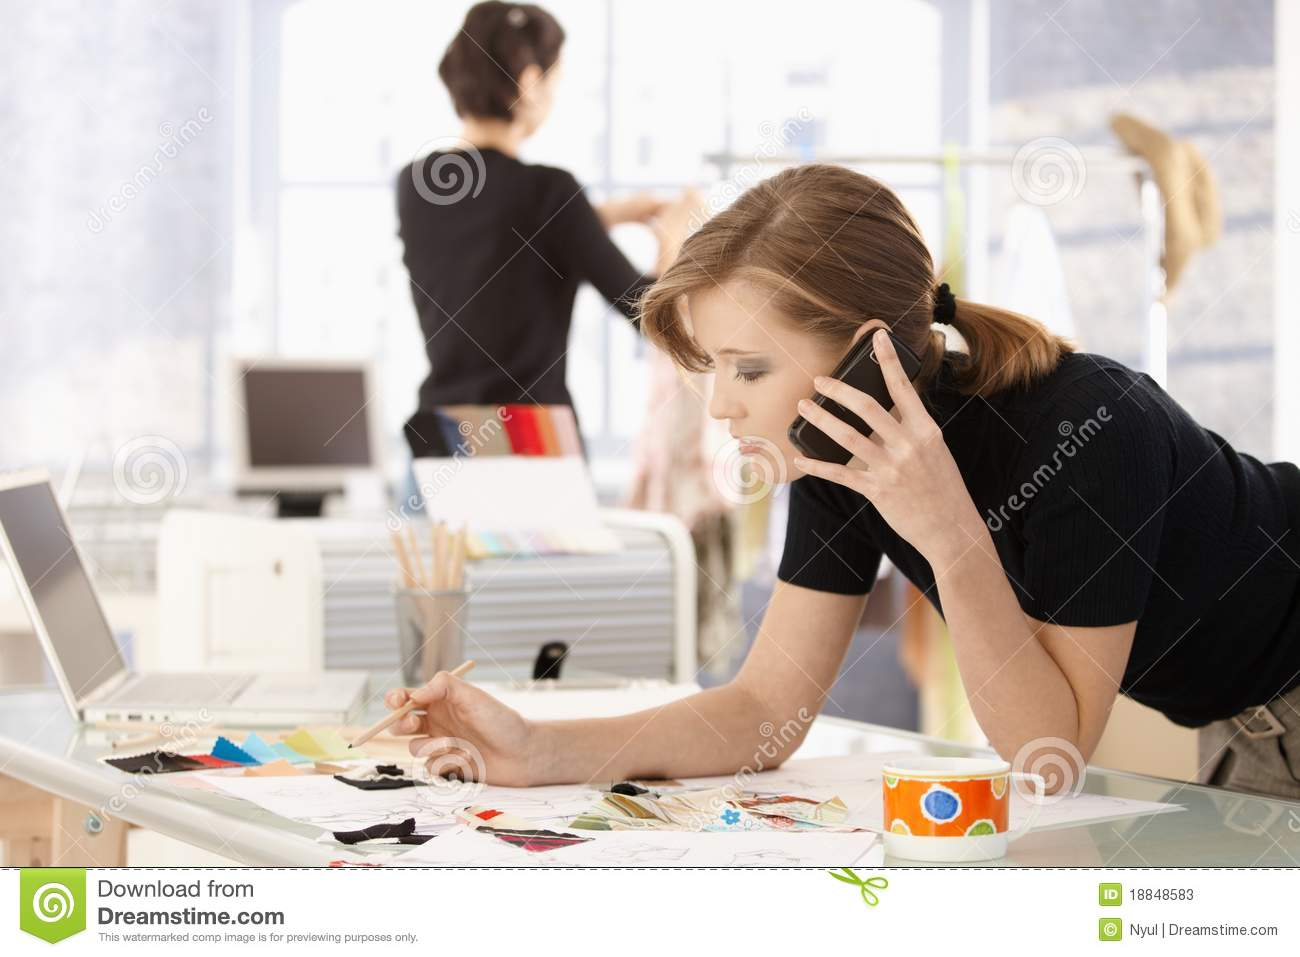 Fashion designer in office stock photos image 18848583 Contemporary fashion designers